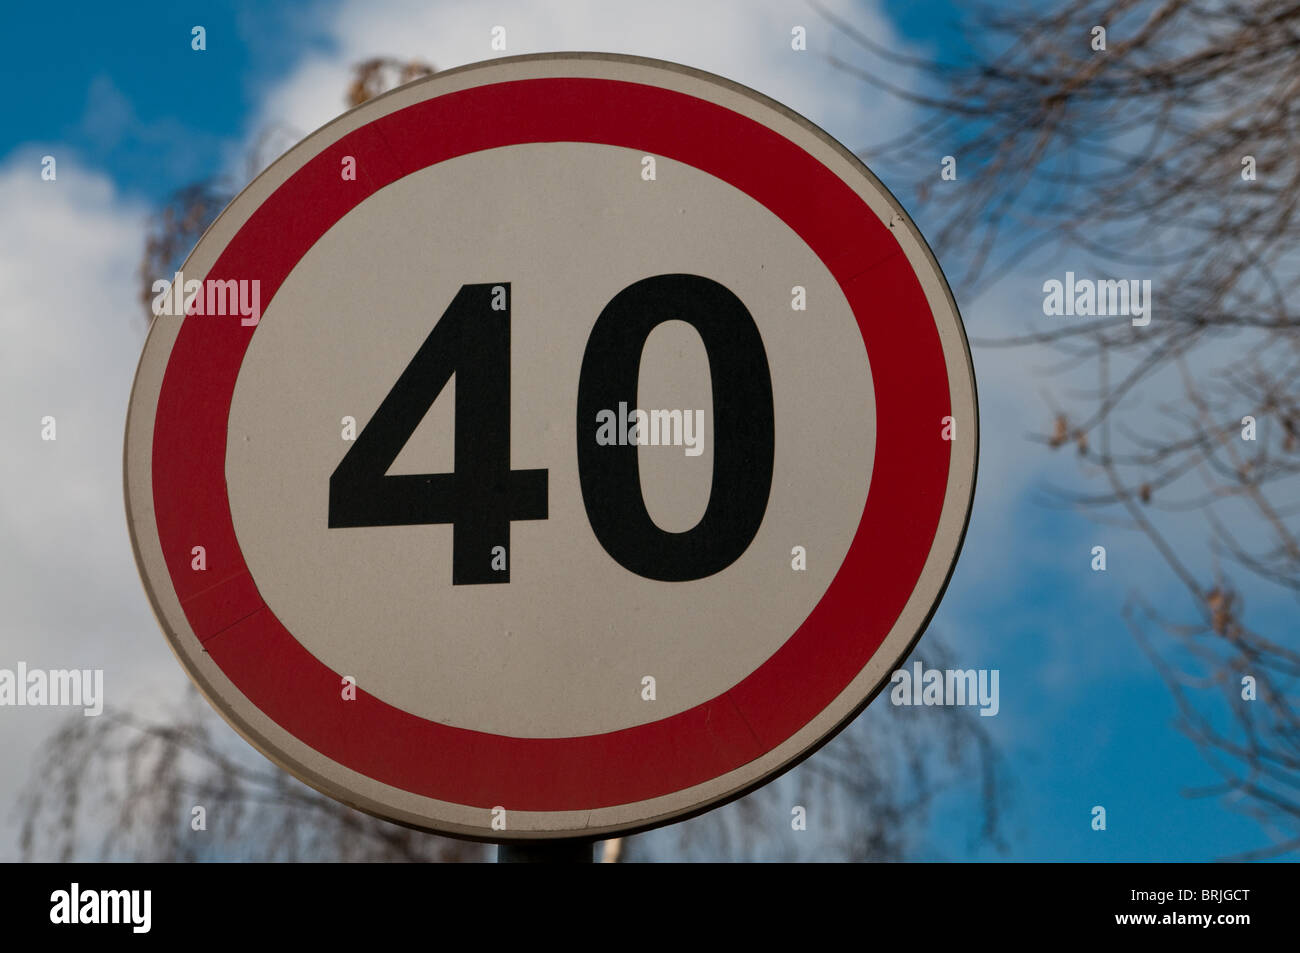 This is russian road sign of the speed limit - Stock Image